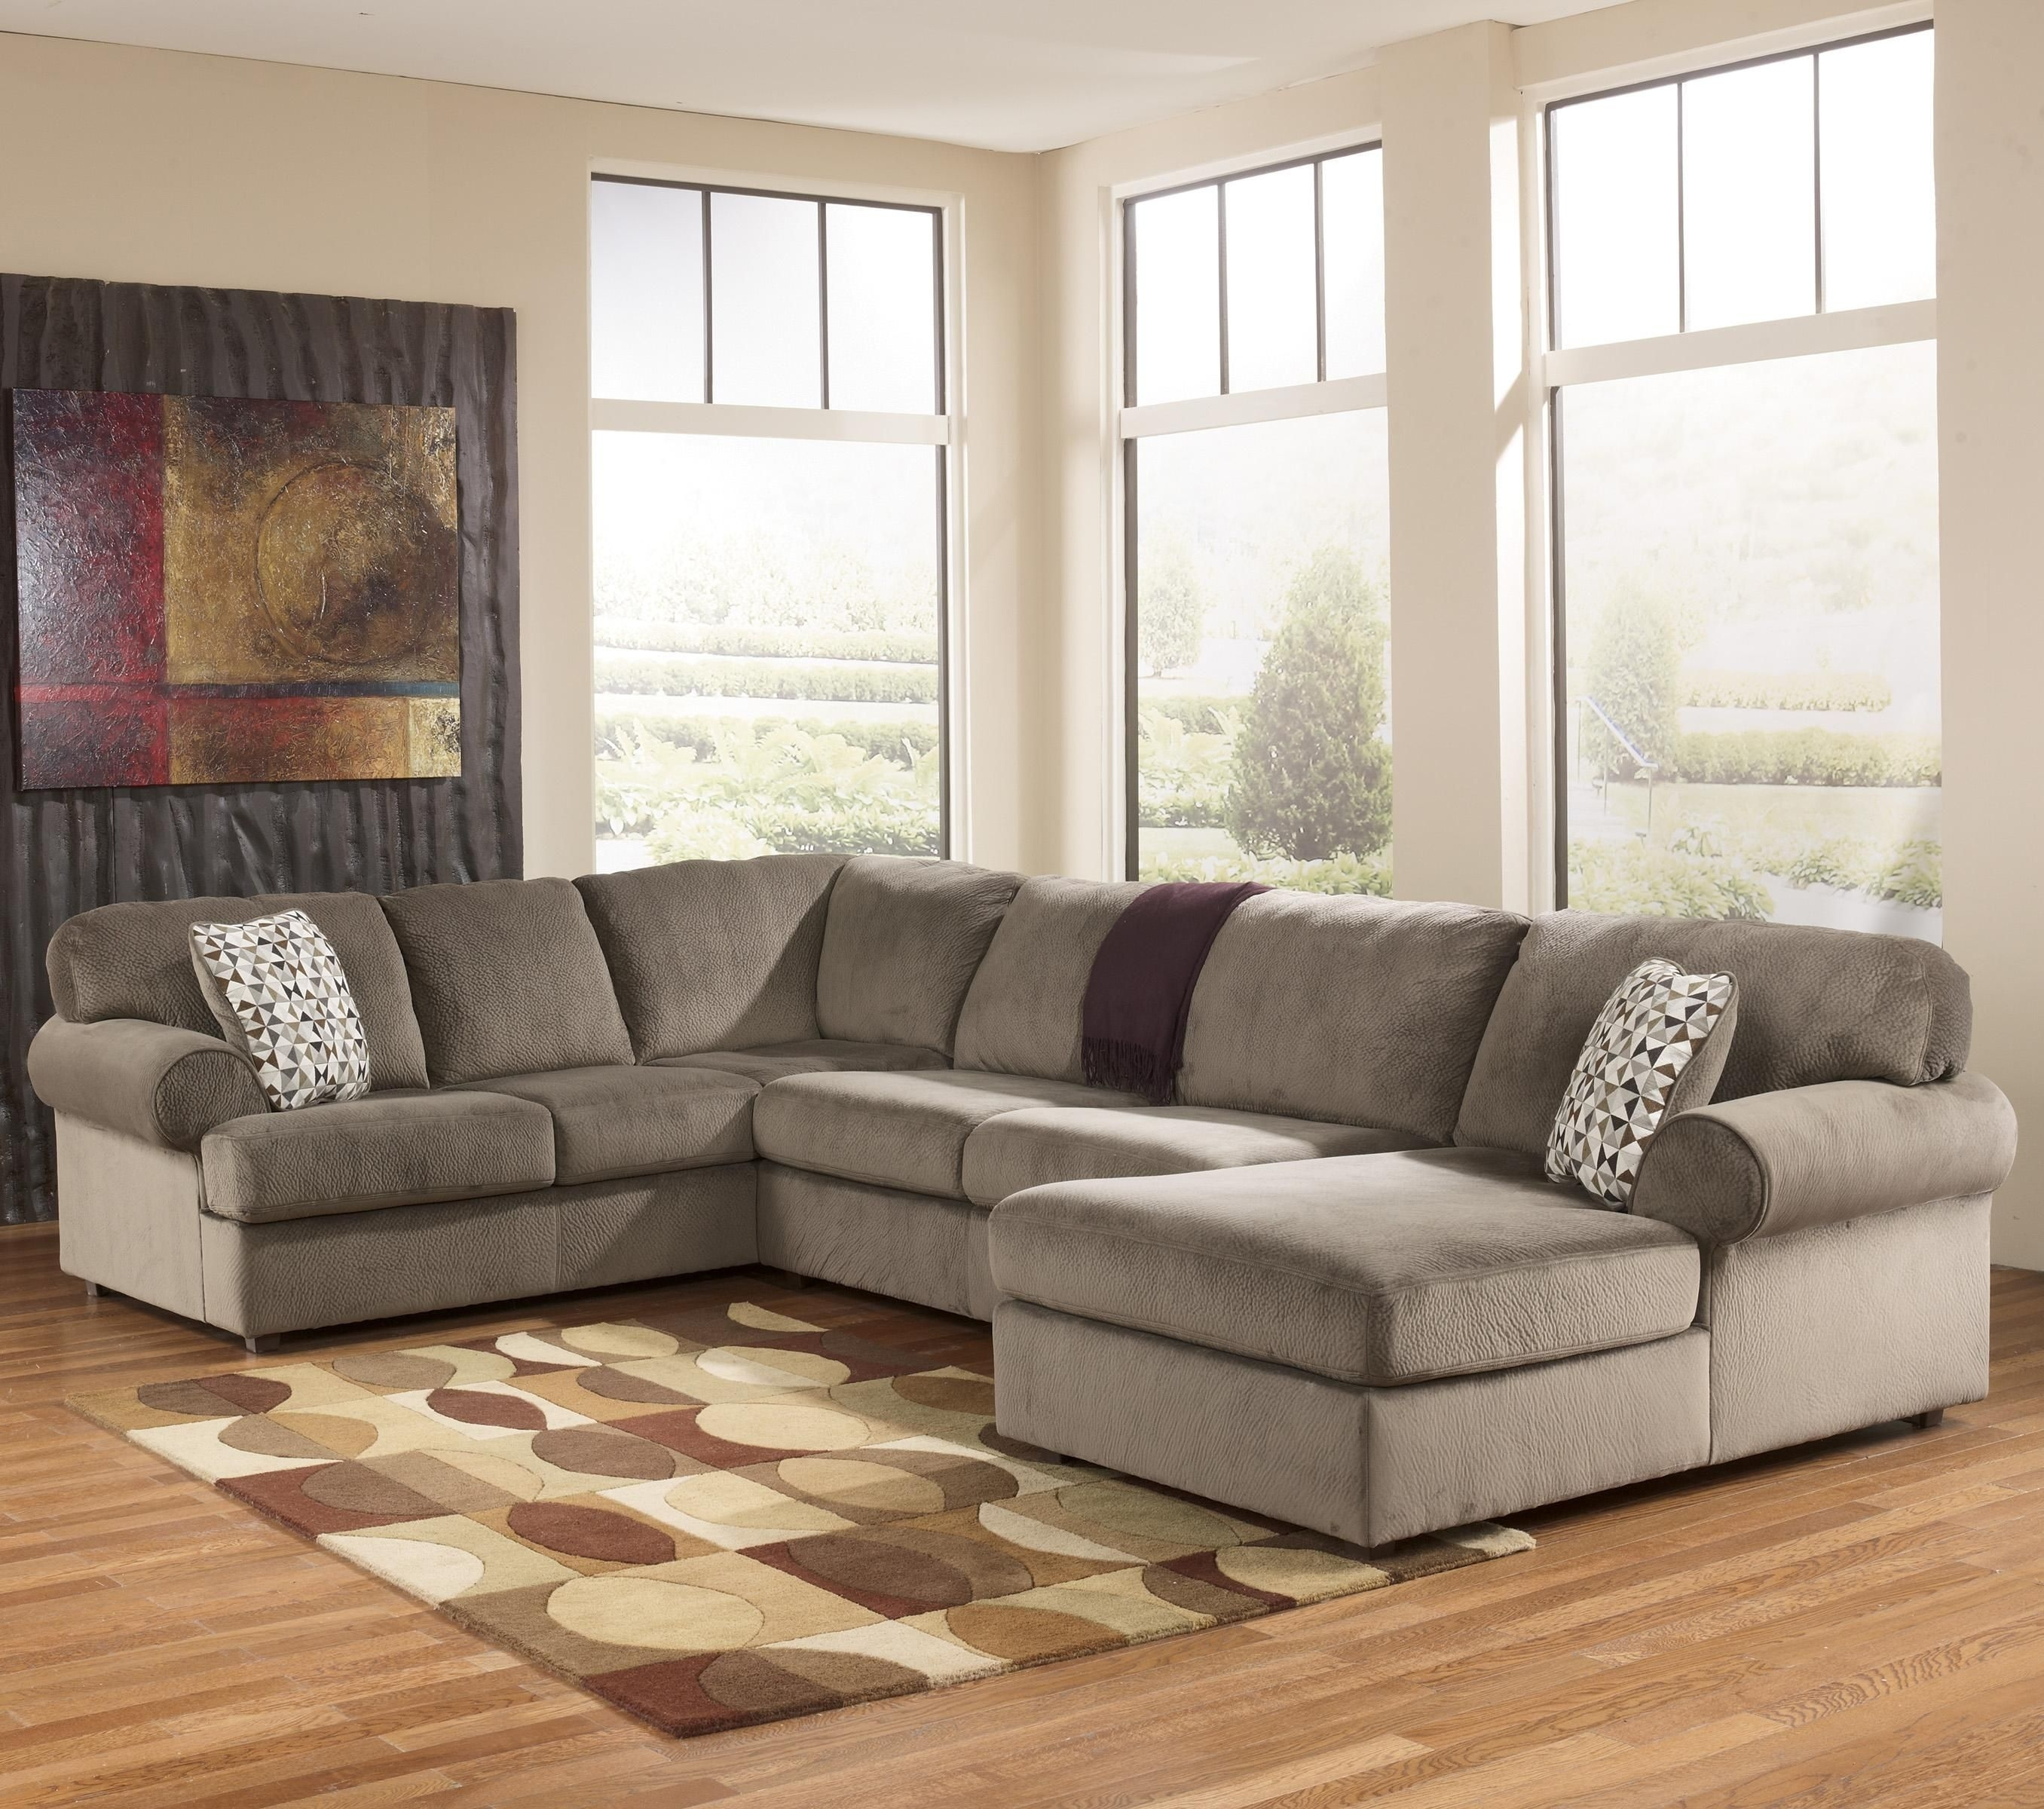 Jessa Place – Dune Casual Sectional Sofa With Right Chaise In Pensacola Fl Sectional Sofas (View 9 of 10)